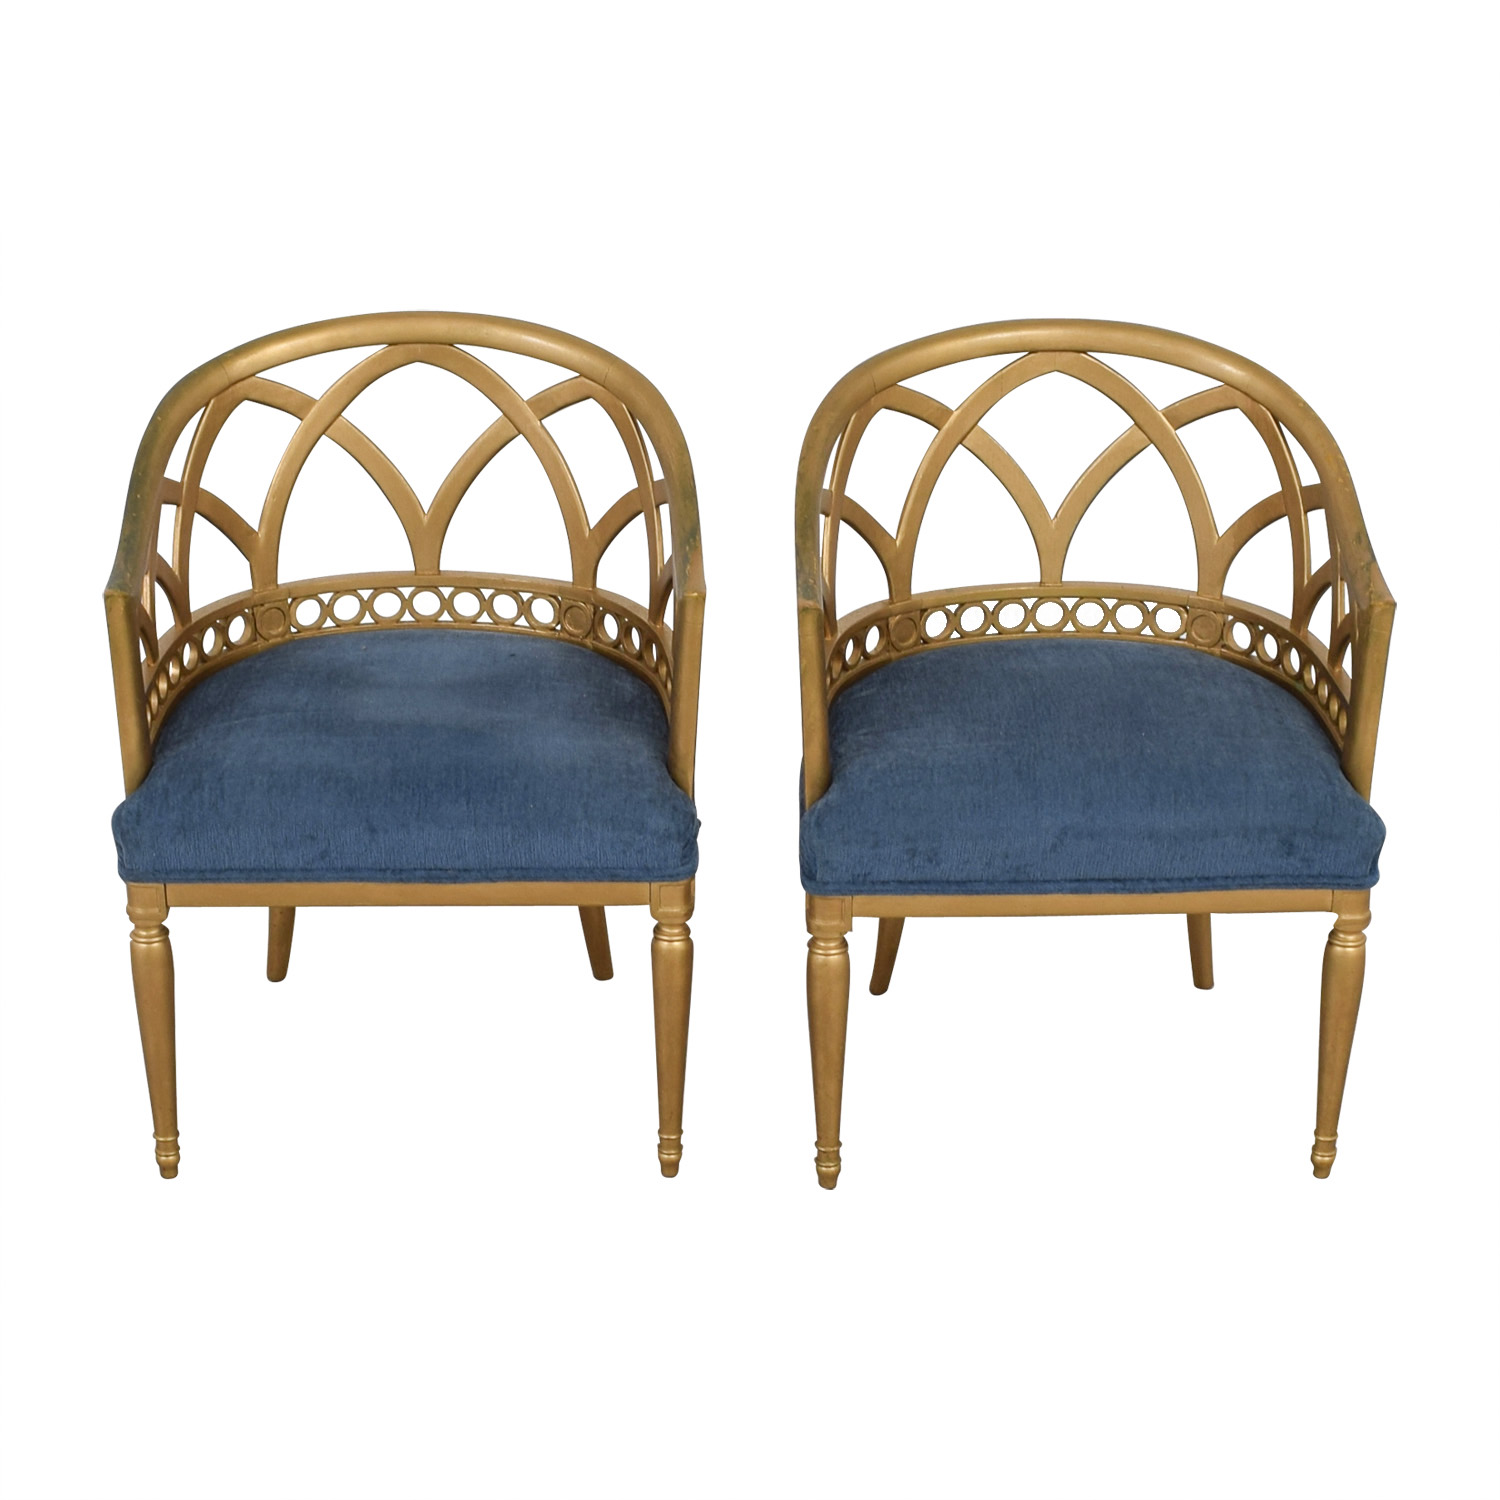 buy Regency Blue and Gold Accent Chairs Sofas